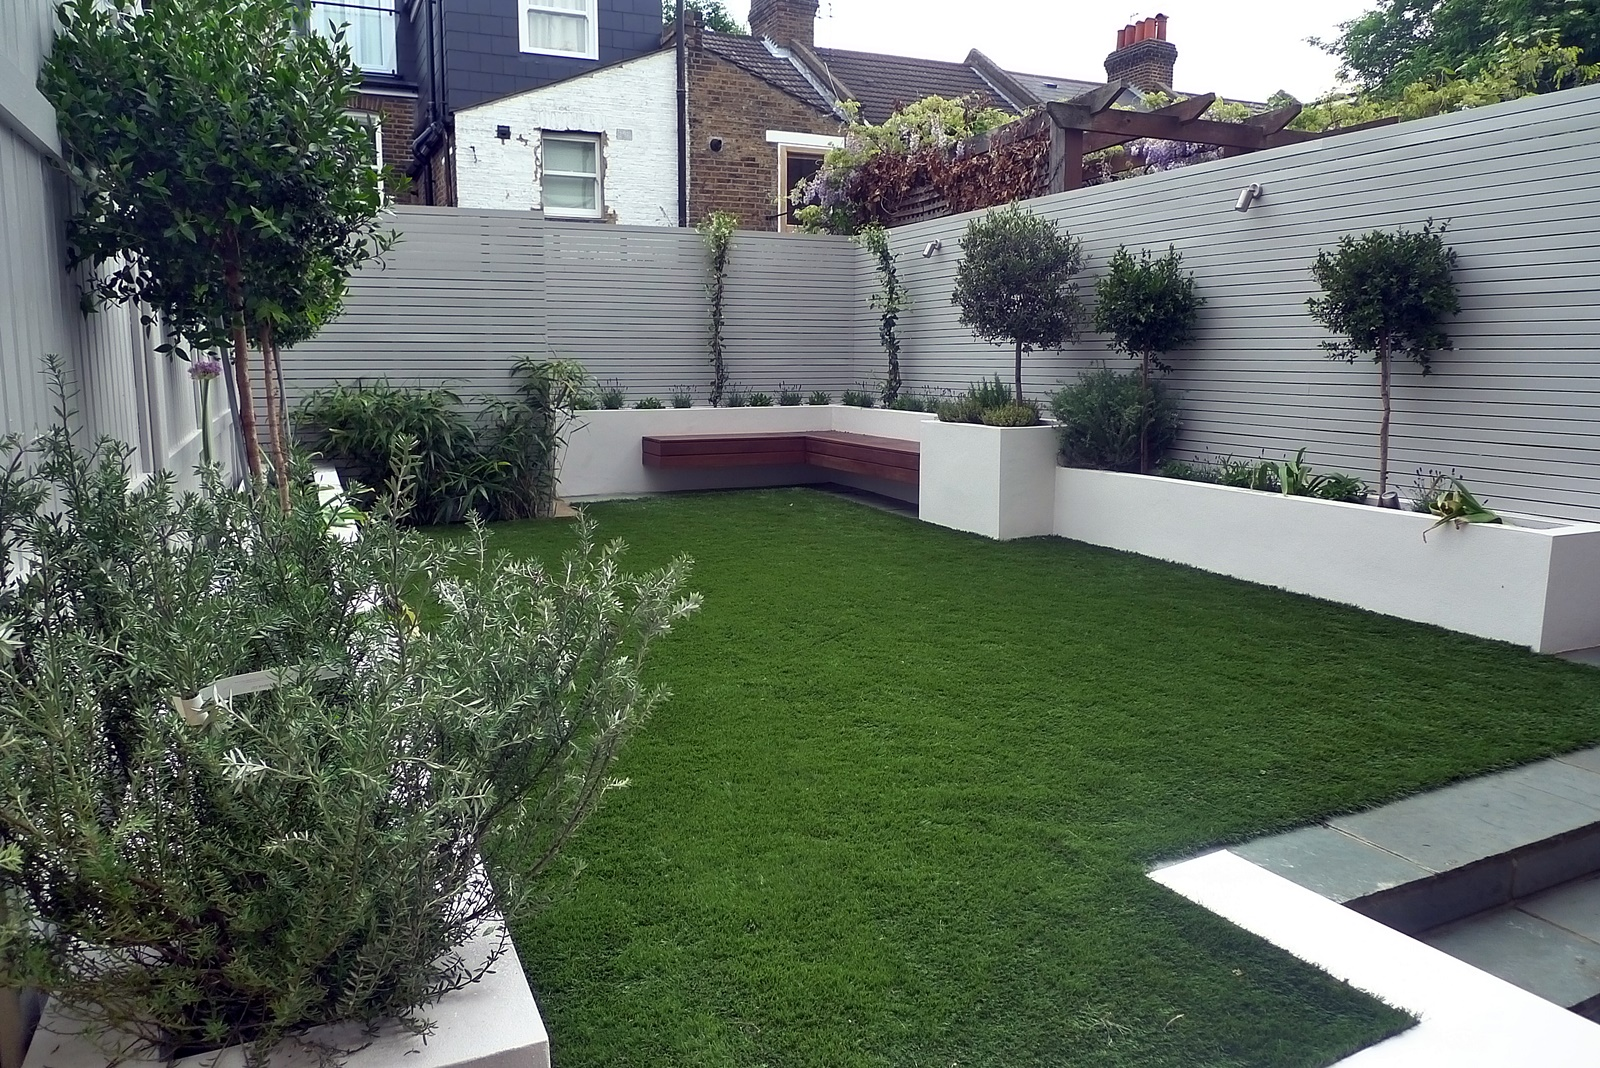 London garden blog london garden blog gardens from for Contemporary backyard landscaping ideas